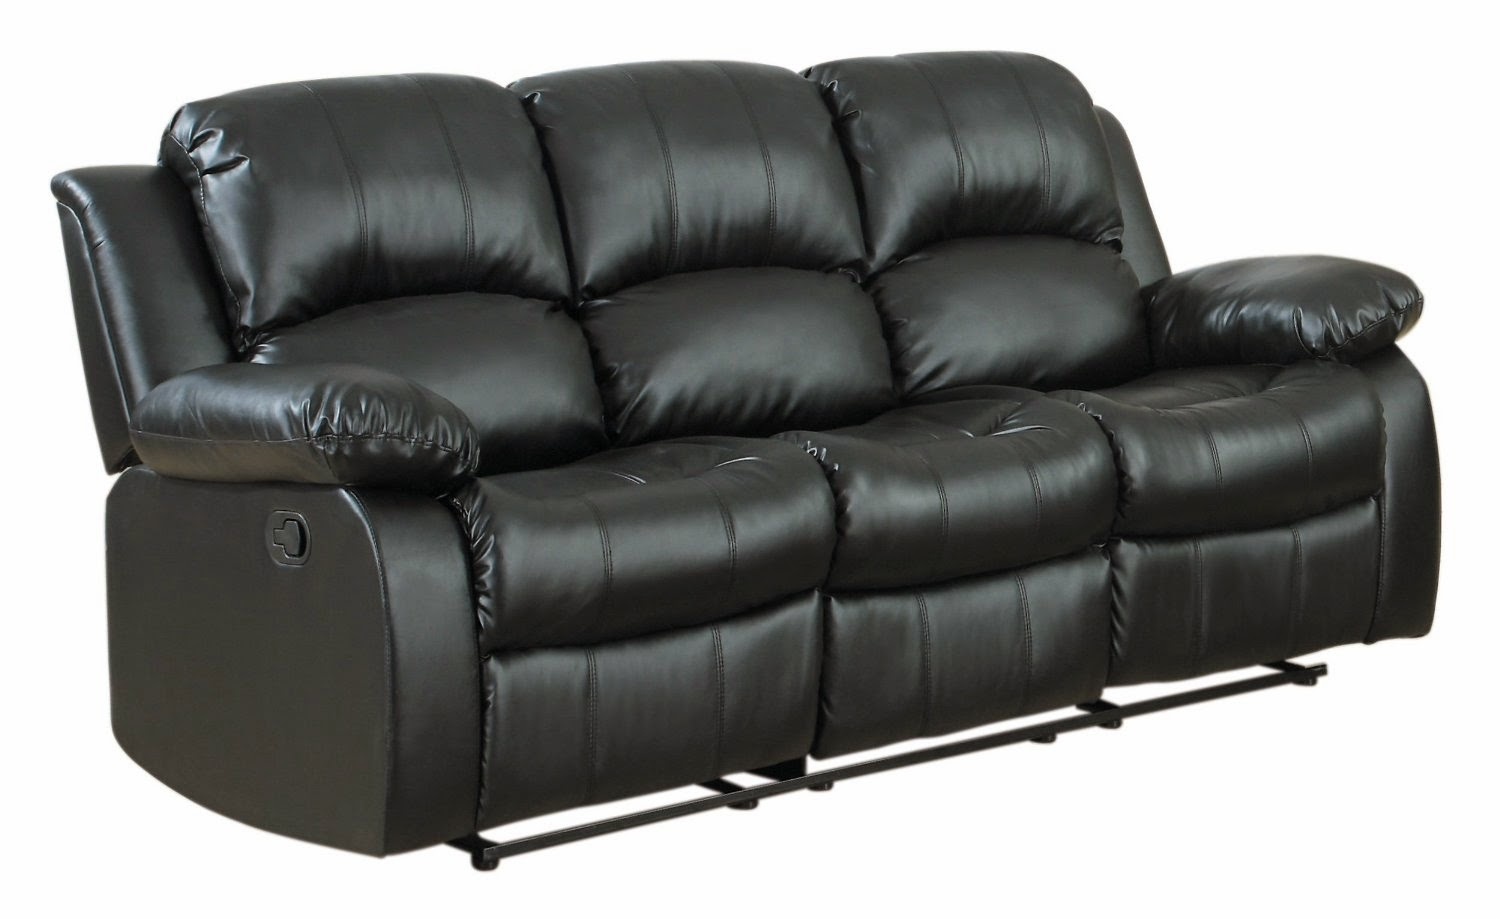 Best reclining sofa for the money leather sofa reclining for Leather sectional sofa